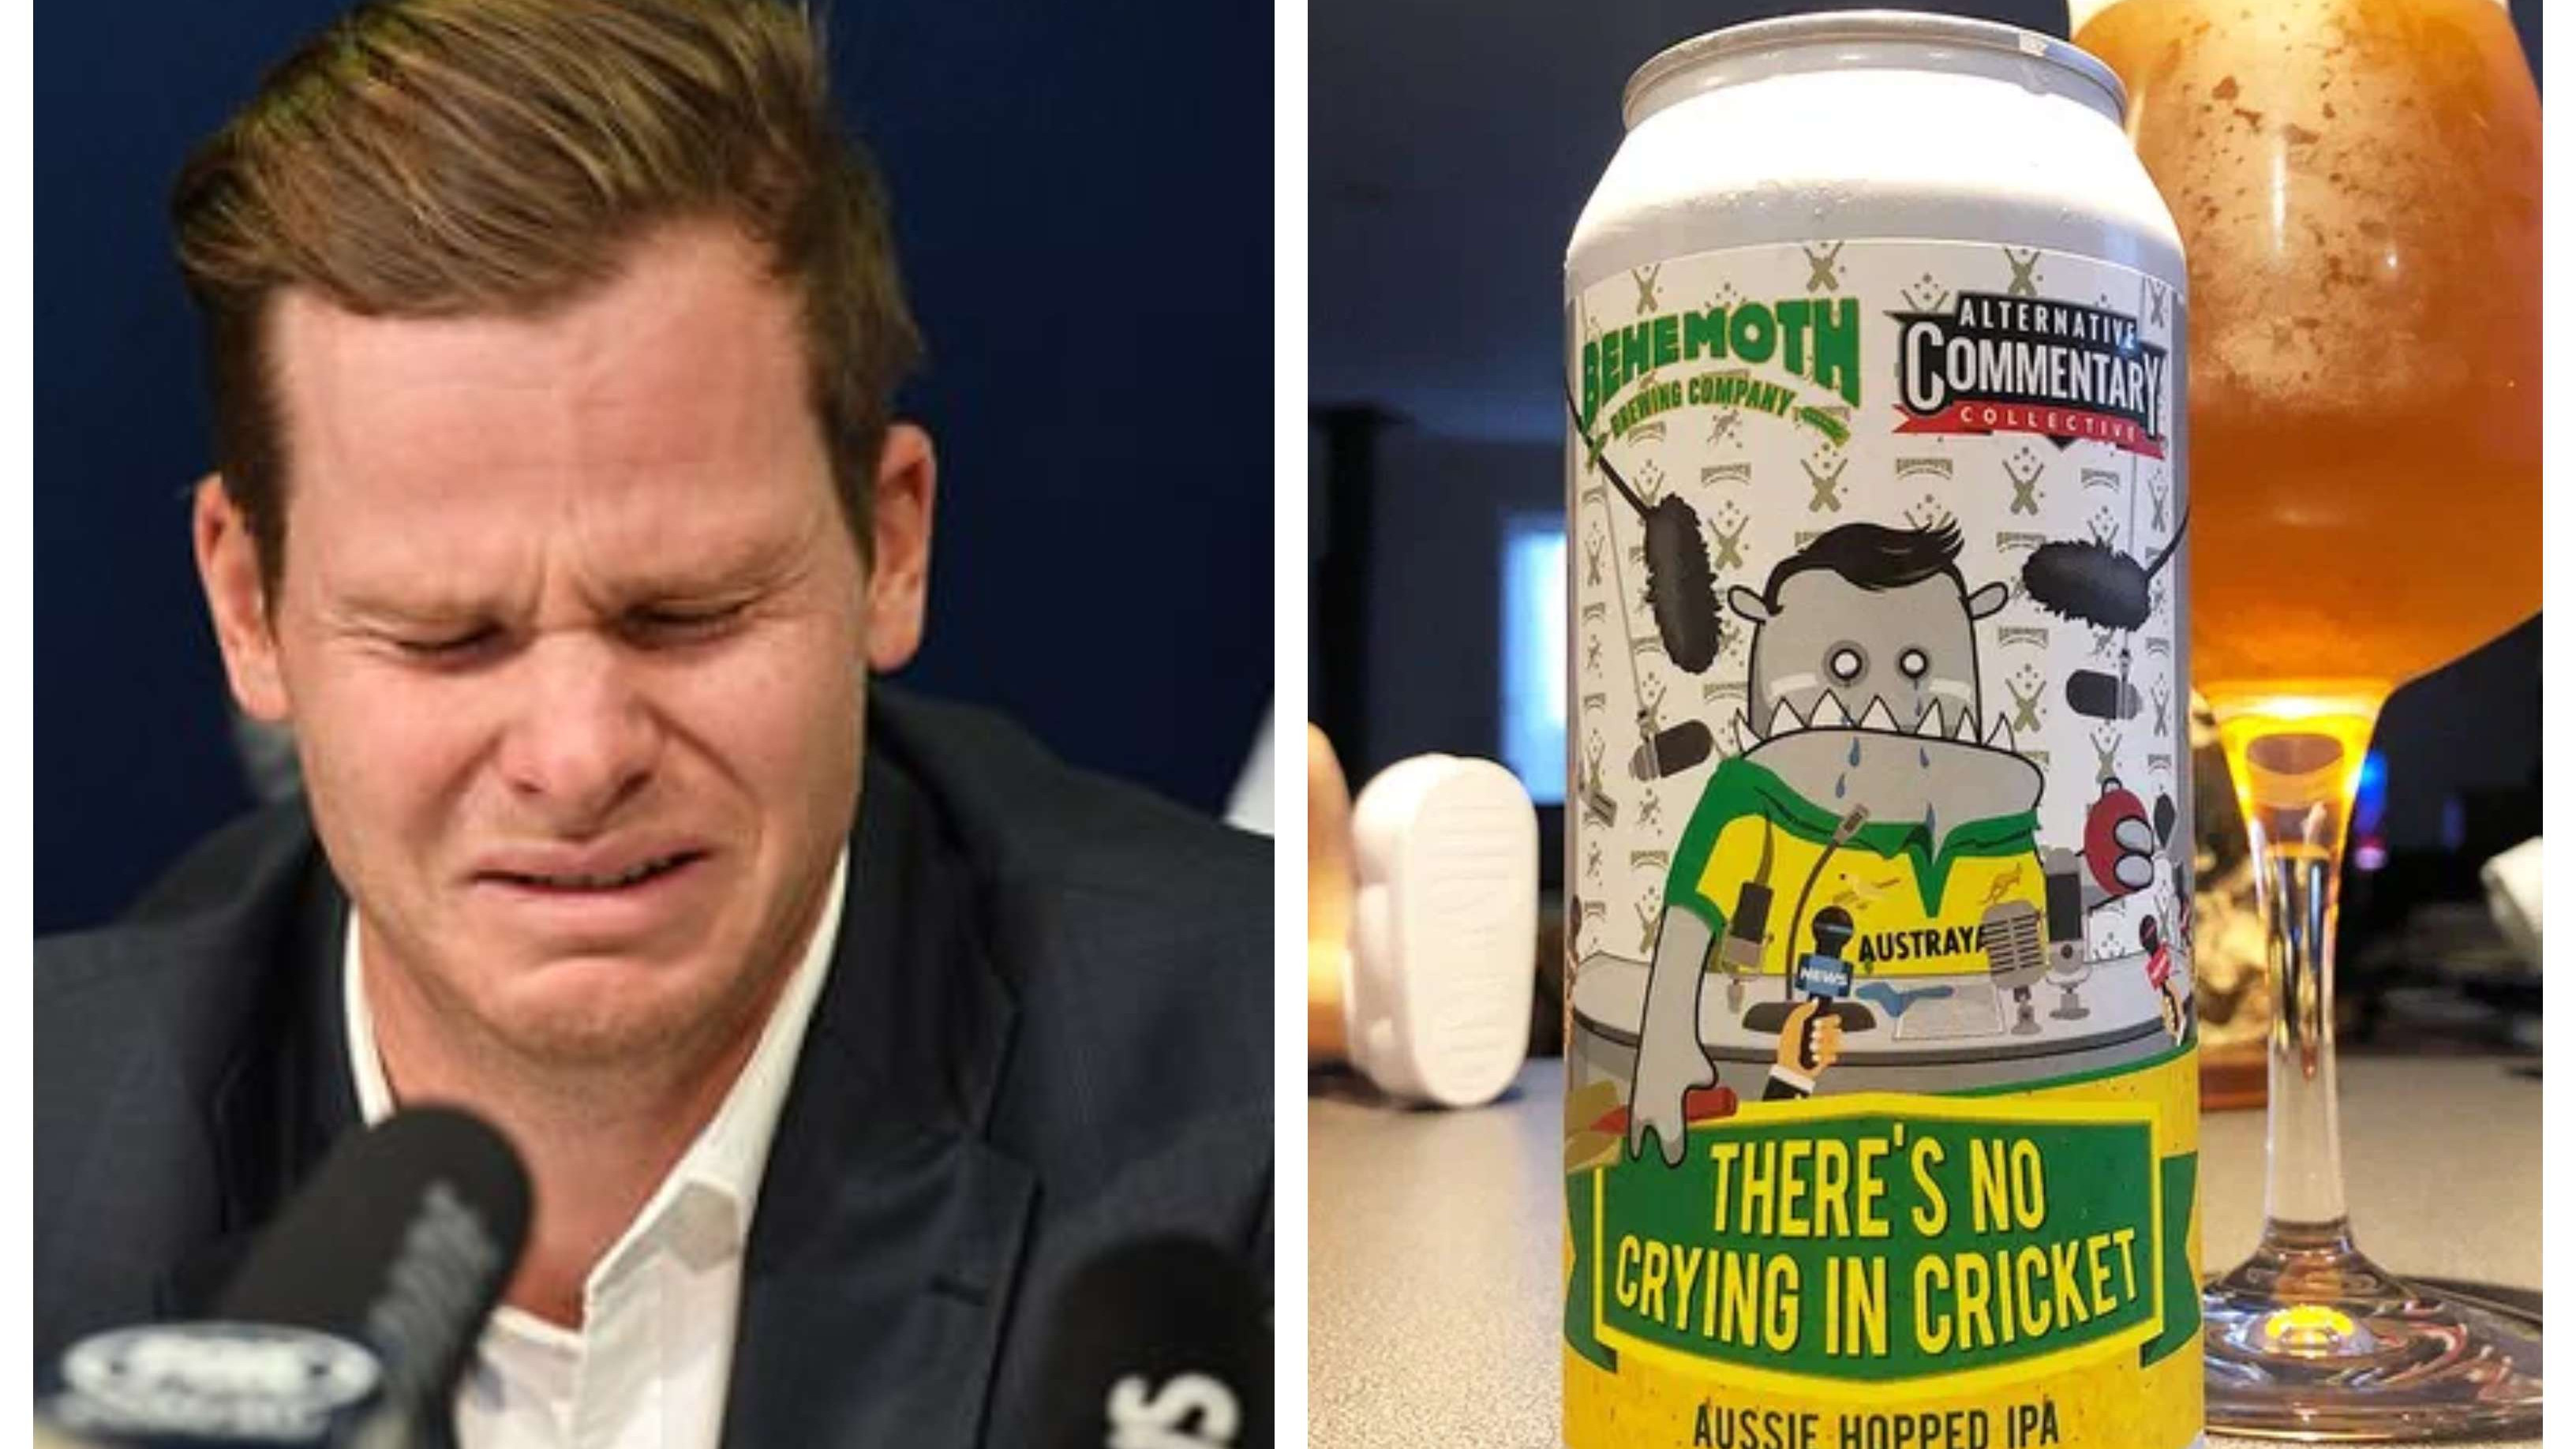 New Zealand-based brewer takes a brutal dig at Steve Smith with reference to sandpaper gate